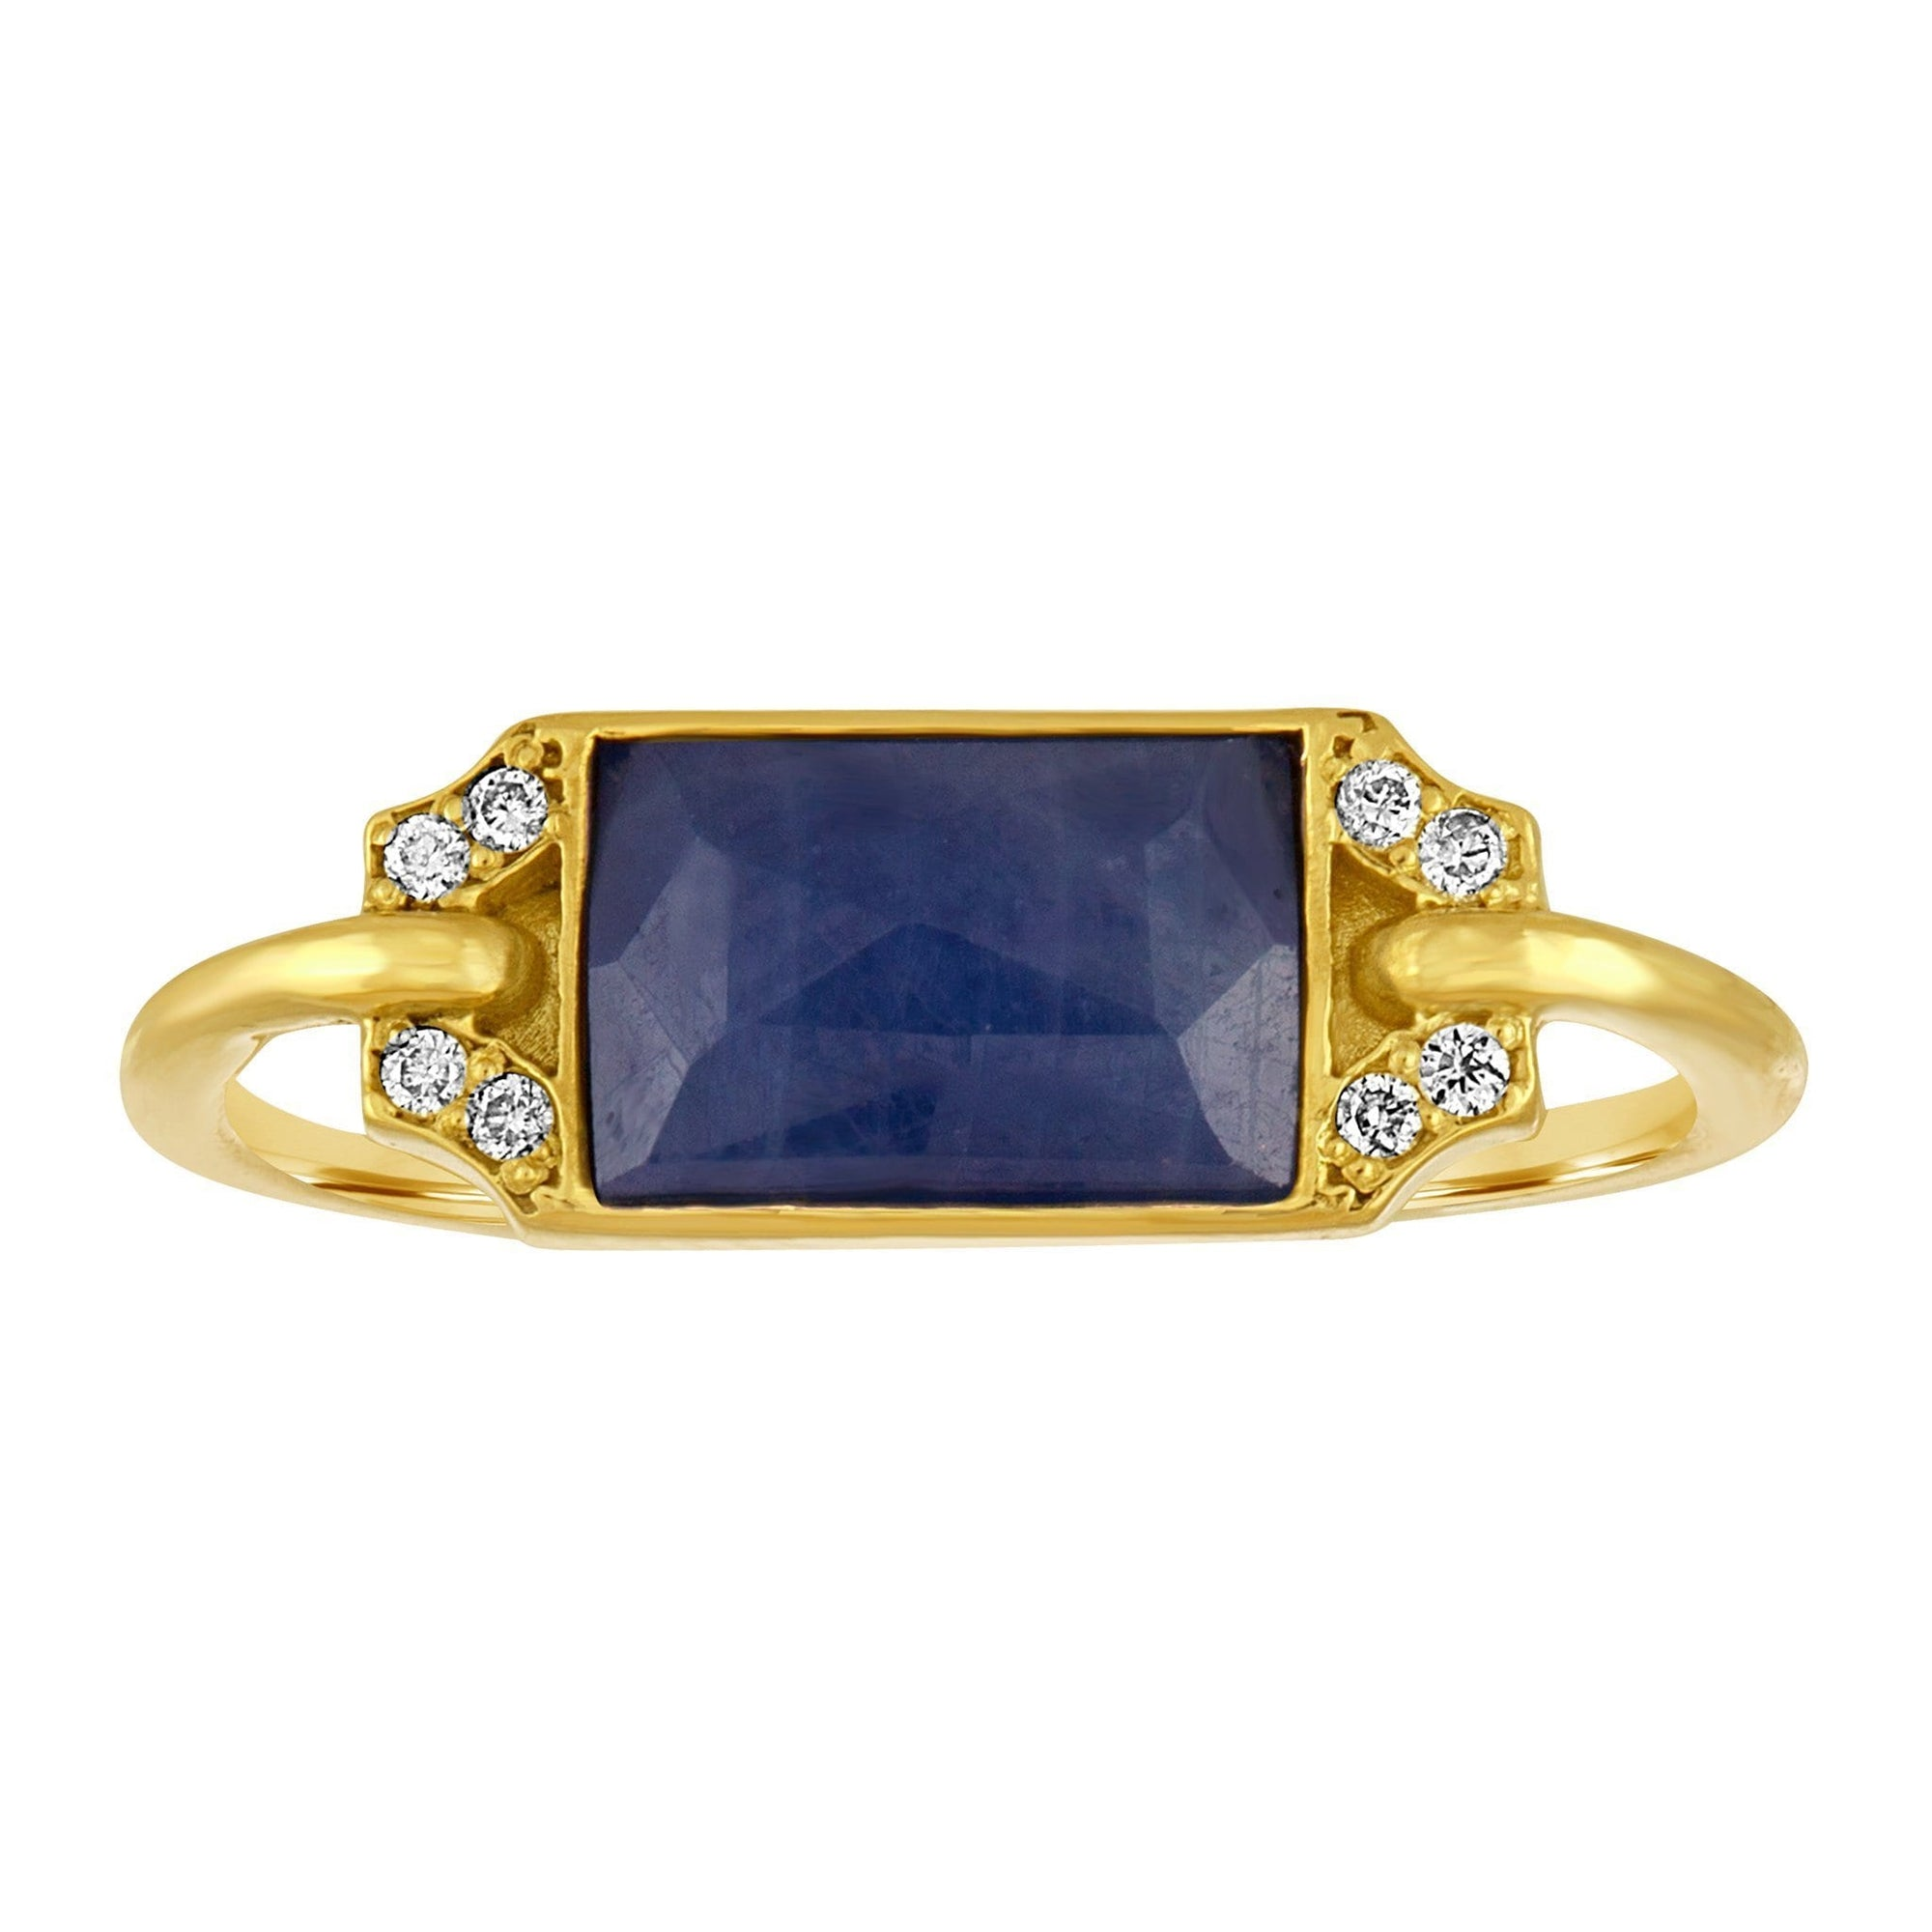 Edge Petite Ring: 18k Gold, Blue Saphire, Diamonds